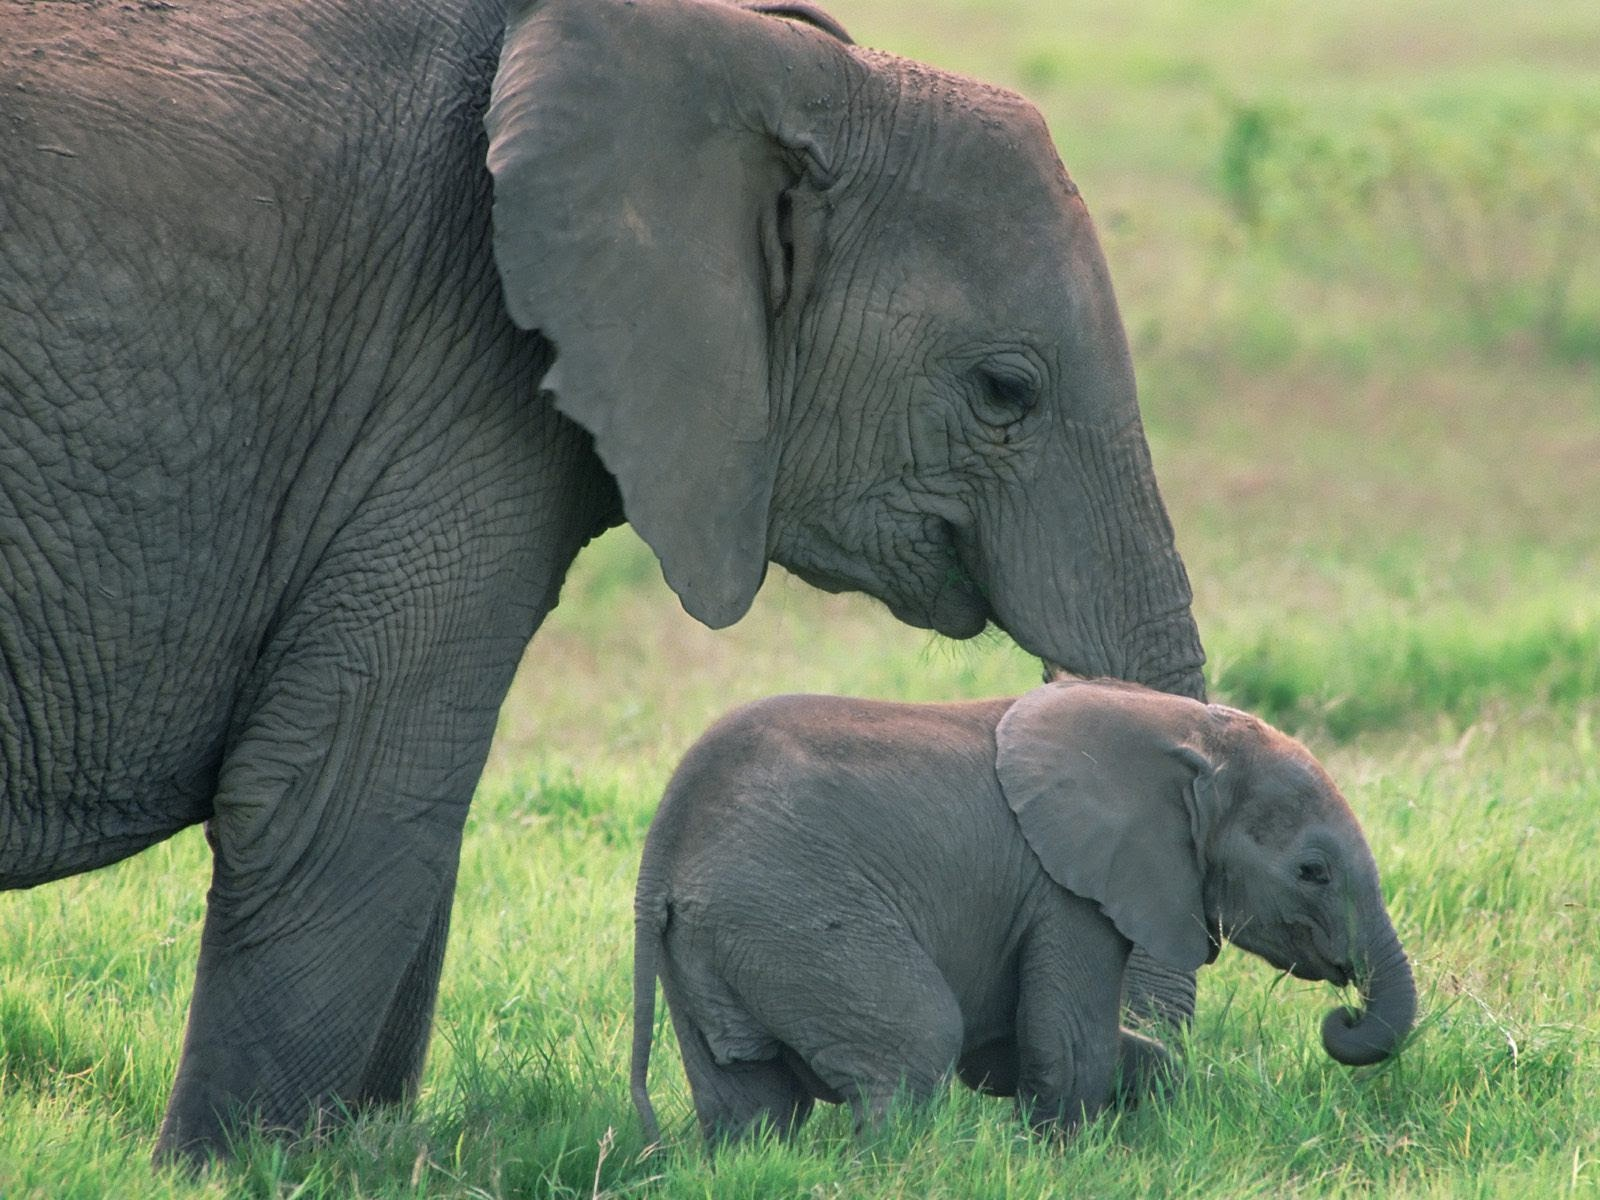 gentle giants elephants today fun animals wiki videos pictures stories. Black Bedroom Furniture Sets. Home Design Ideas